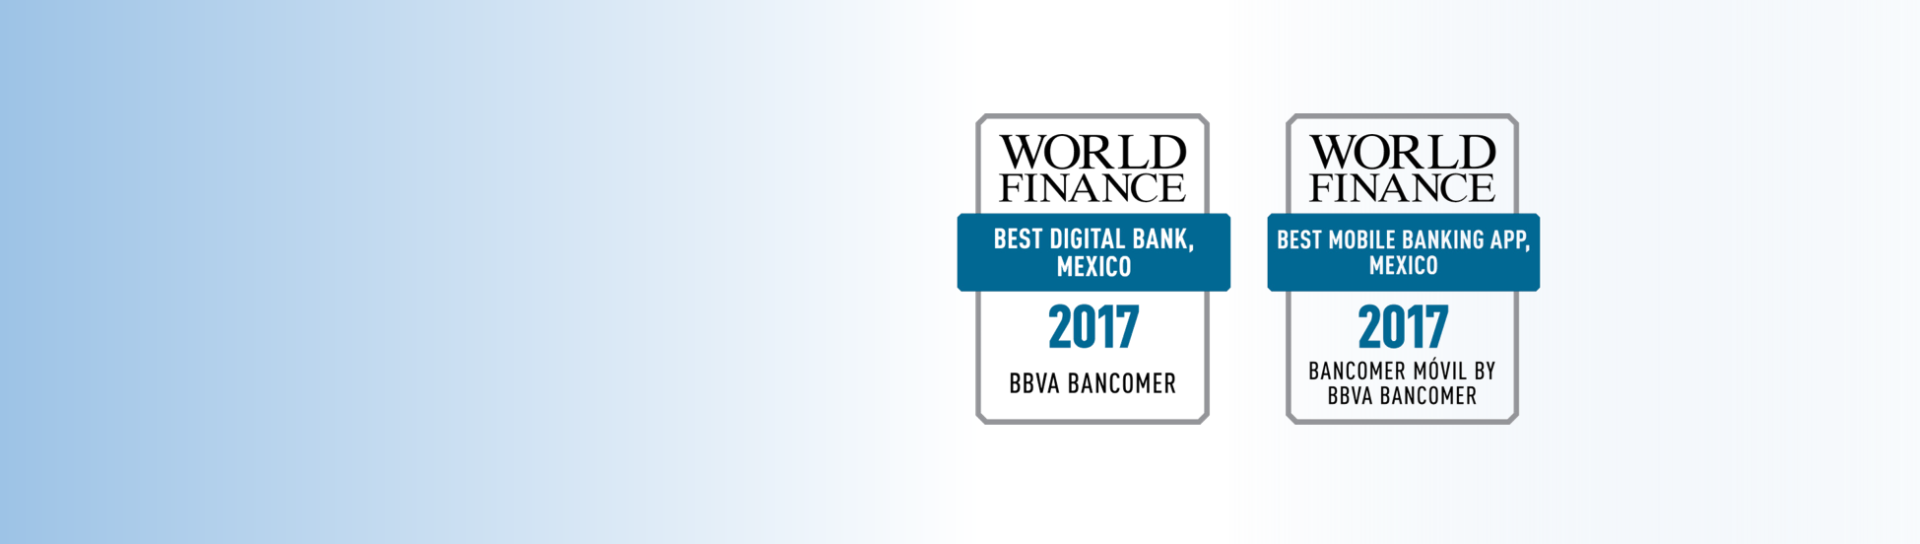 BBVA Bancomer Still Leads Digital Transformation In Mexico